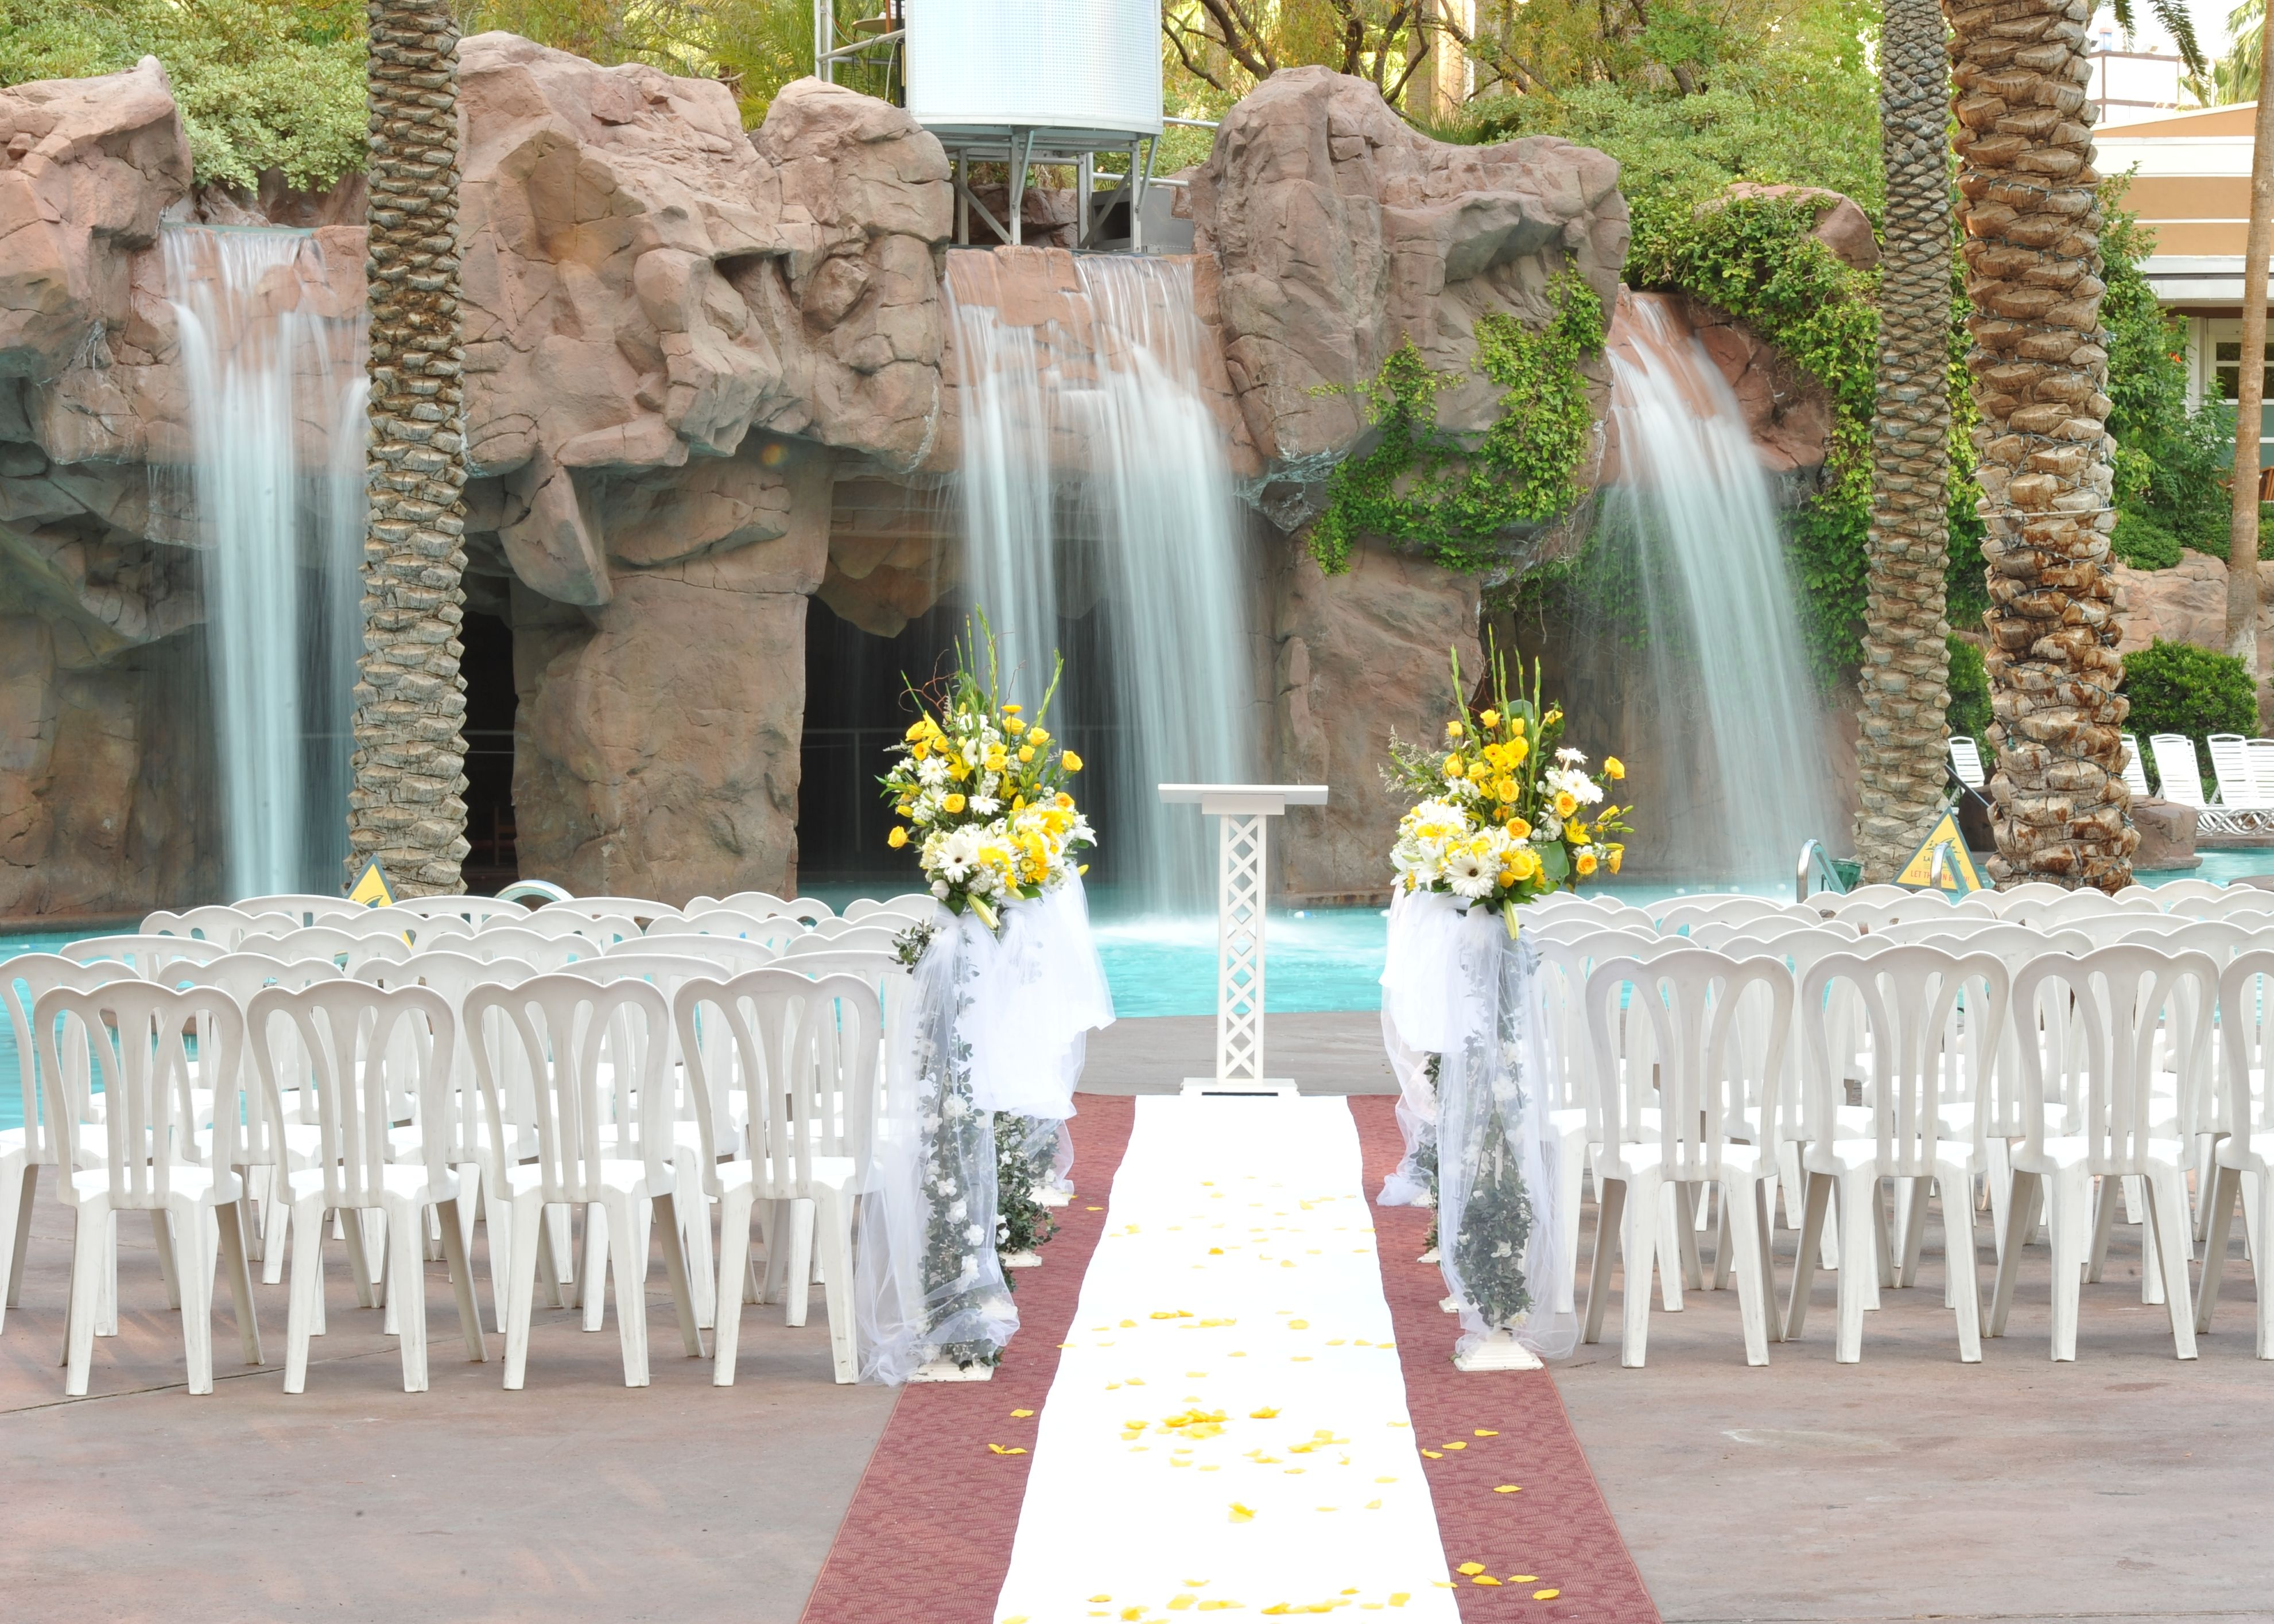 vegas weddings vegas wedding chapels The Crescendo Pool wedding chapel at the Flamingo Hotel Las Vegas